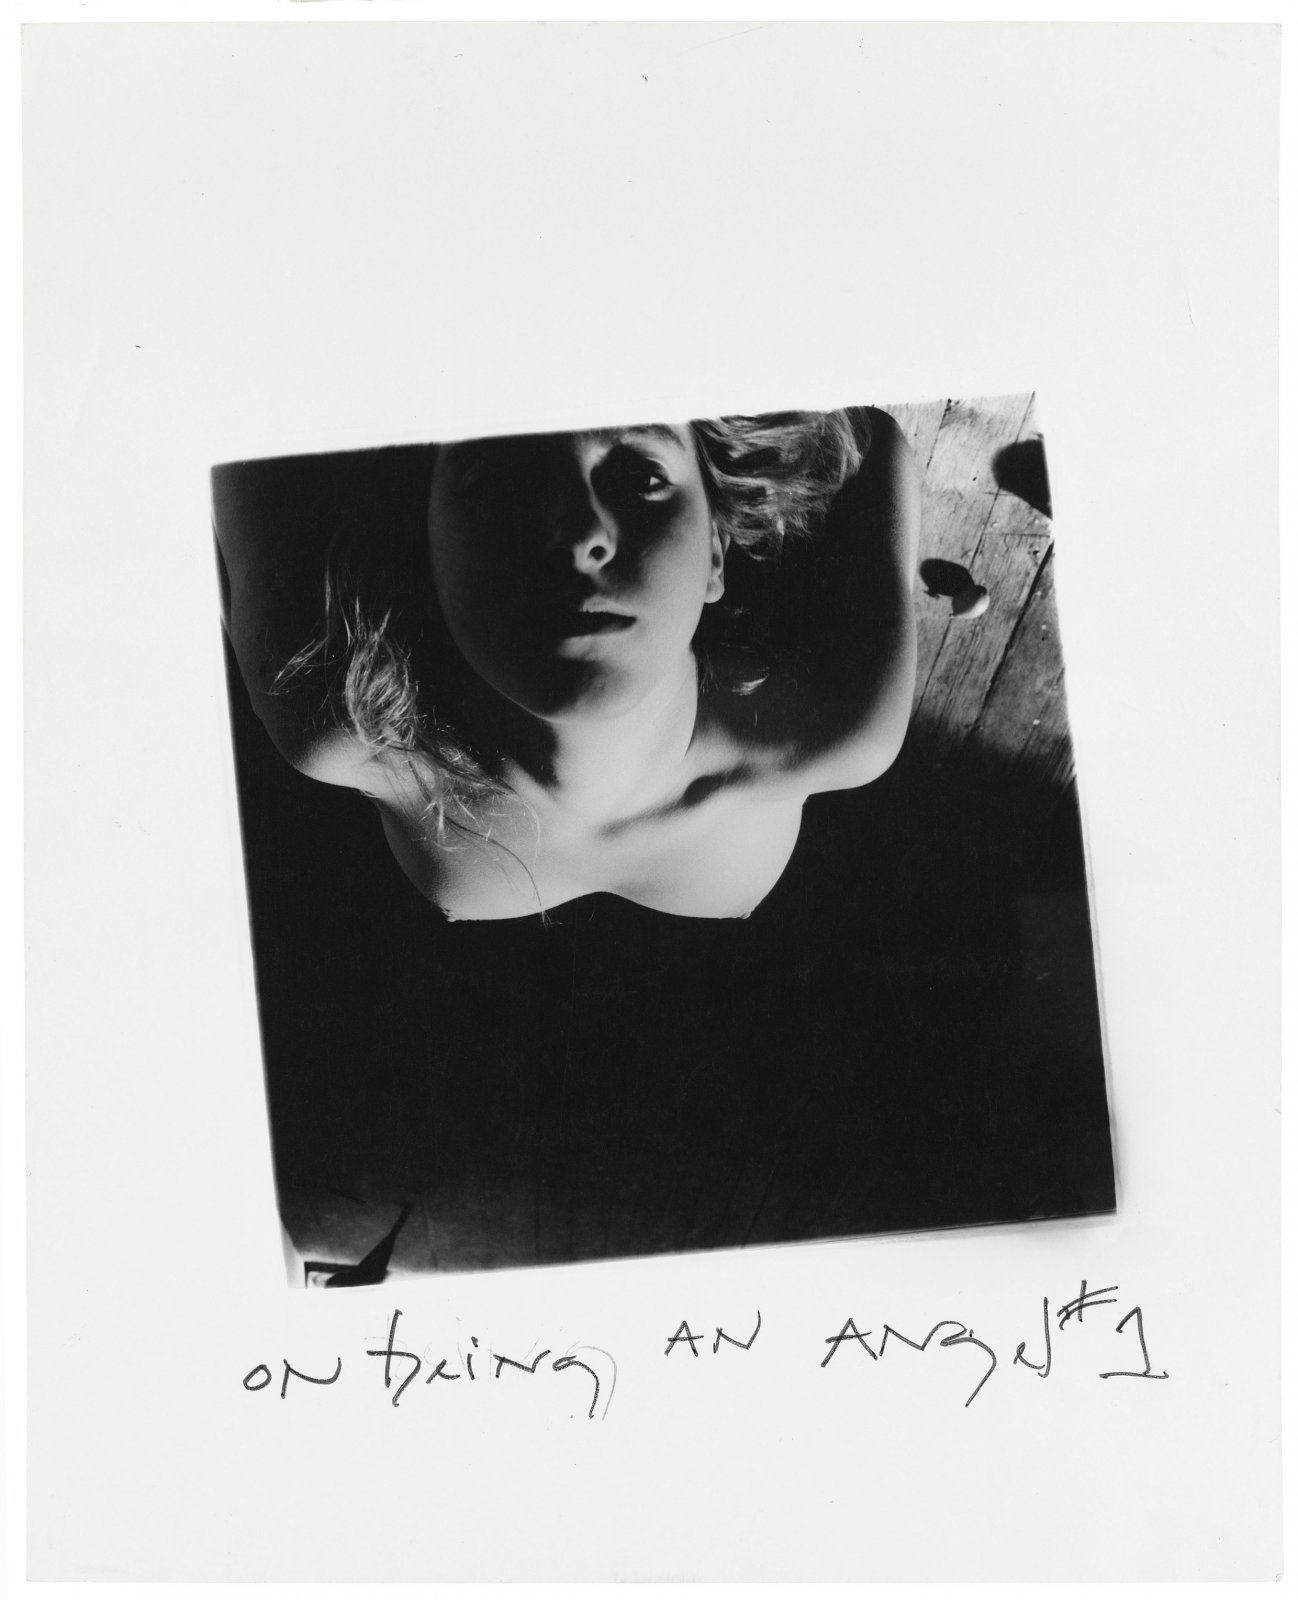 Francesca Woodman, On Being an Angel # 1, Providence, Rhode Island, 1977 © George and Betty Woodman